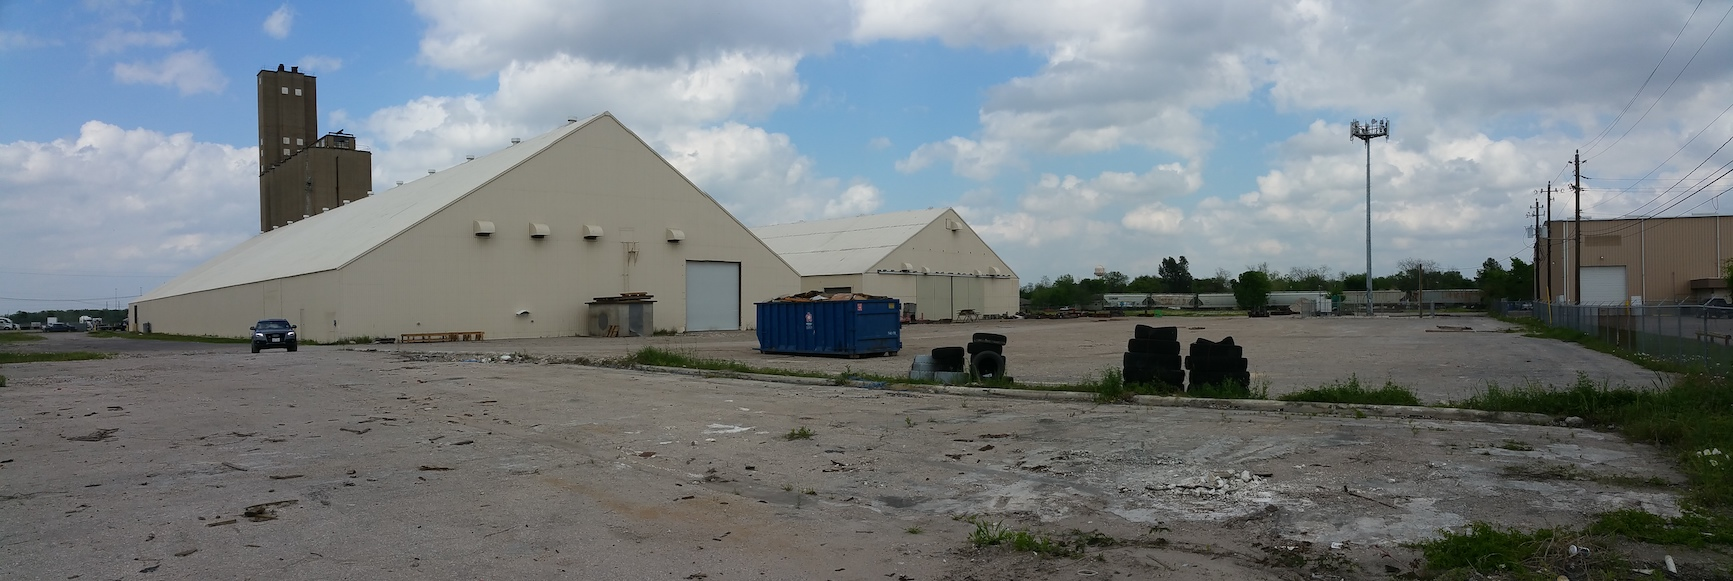 4800 Fidelity - South end of 54,000 SF and its yard area